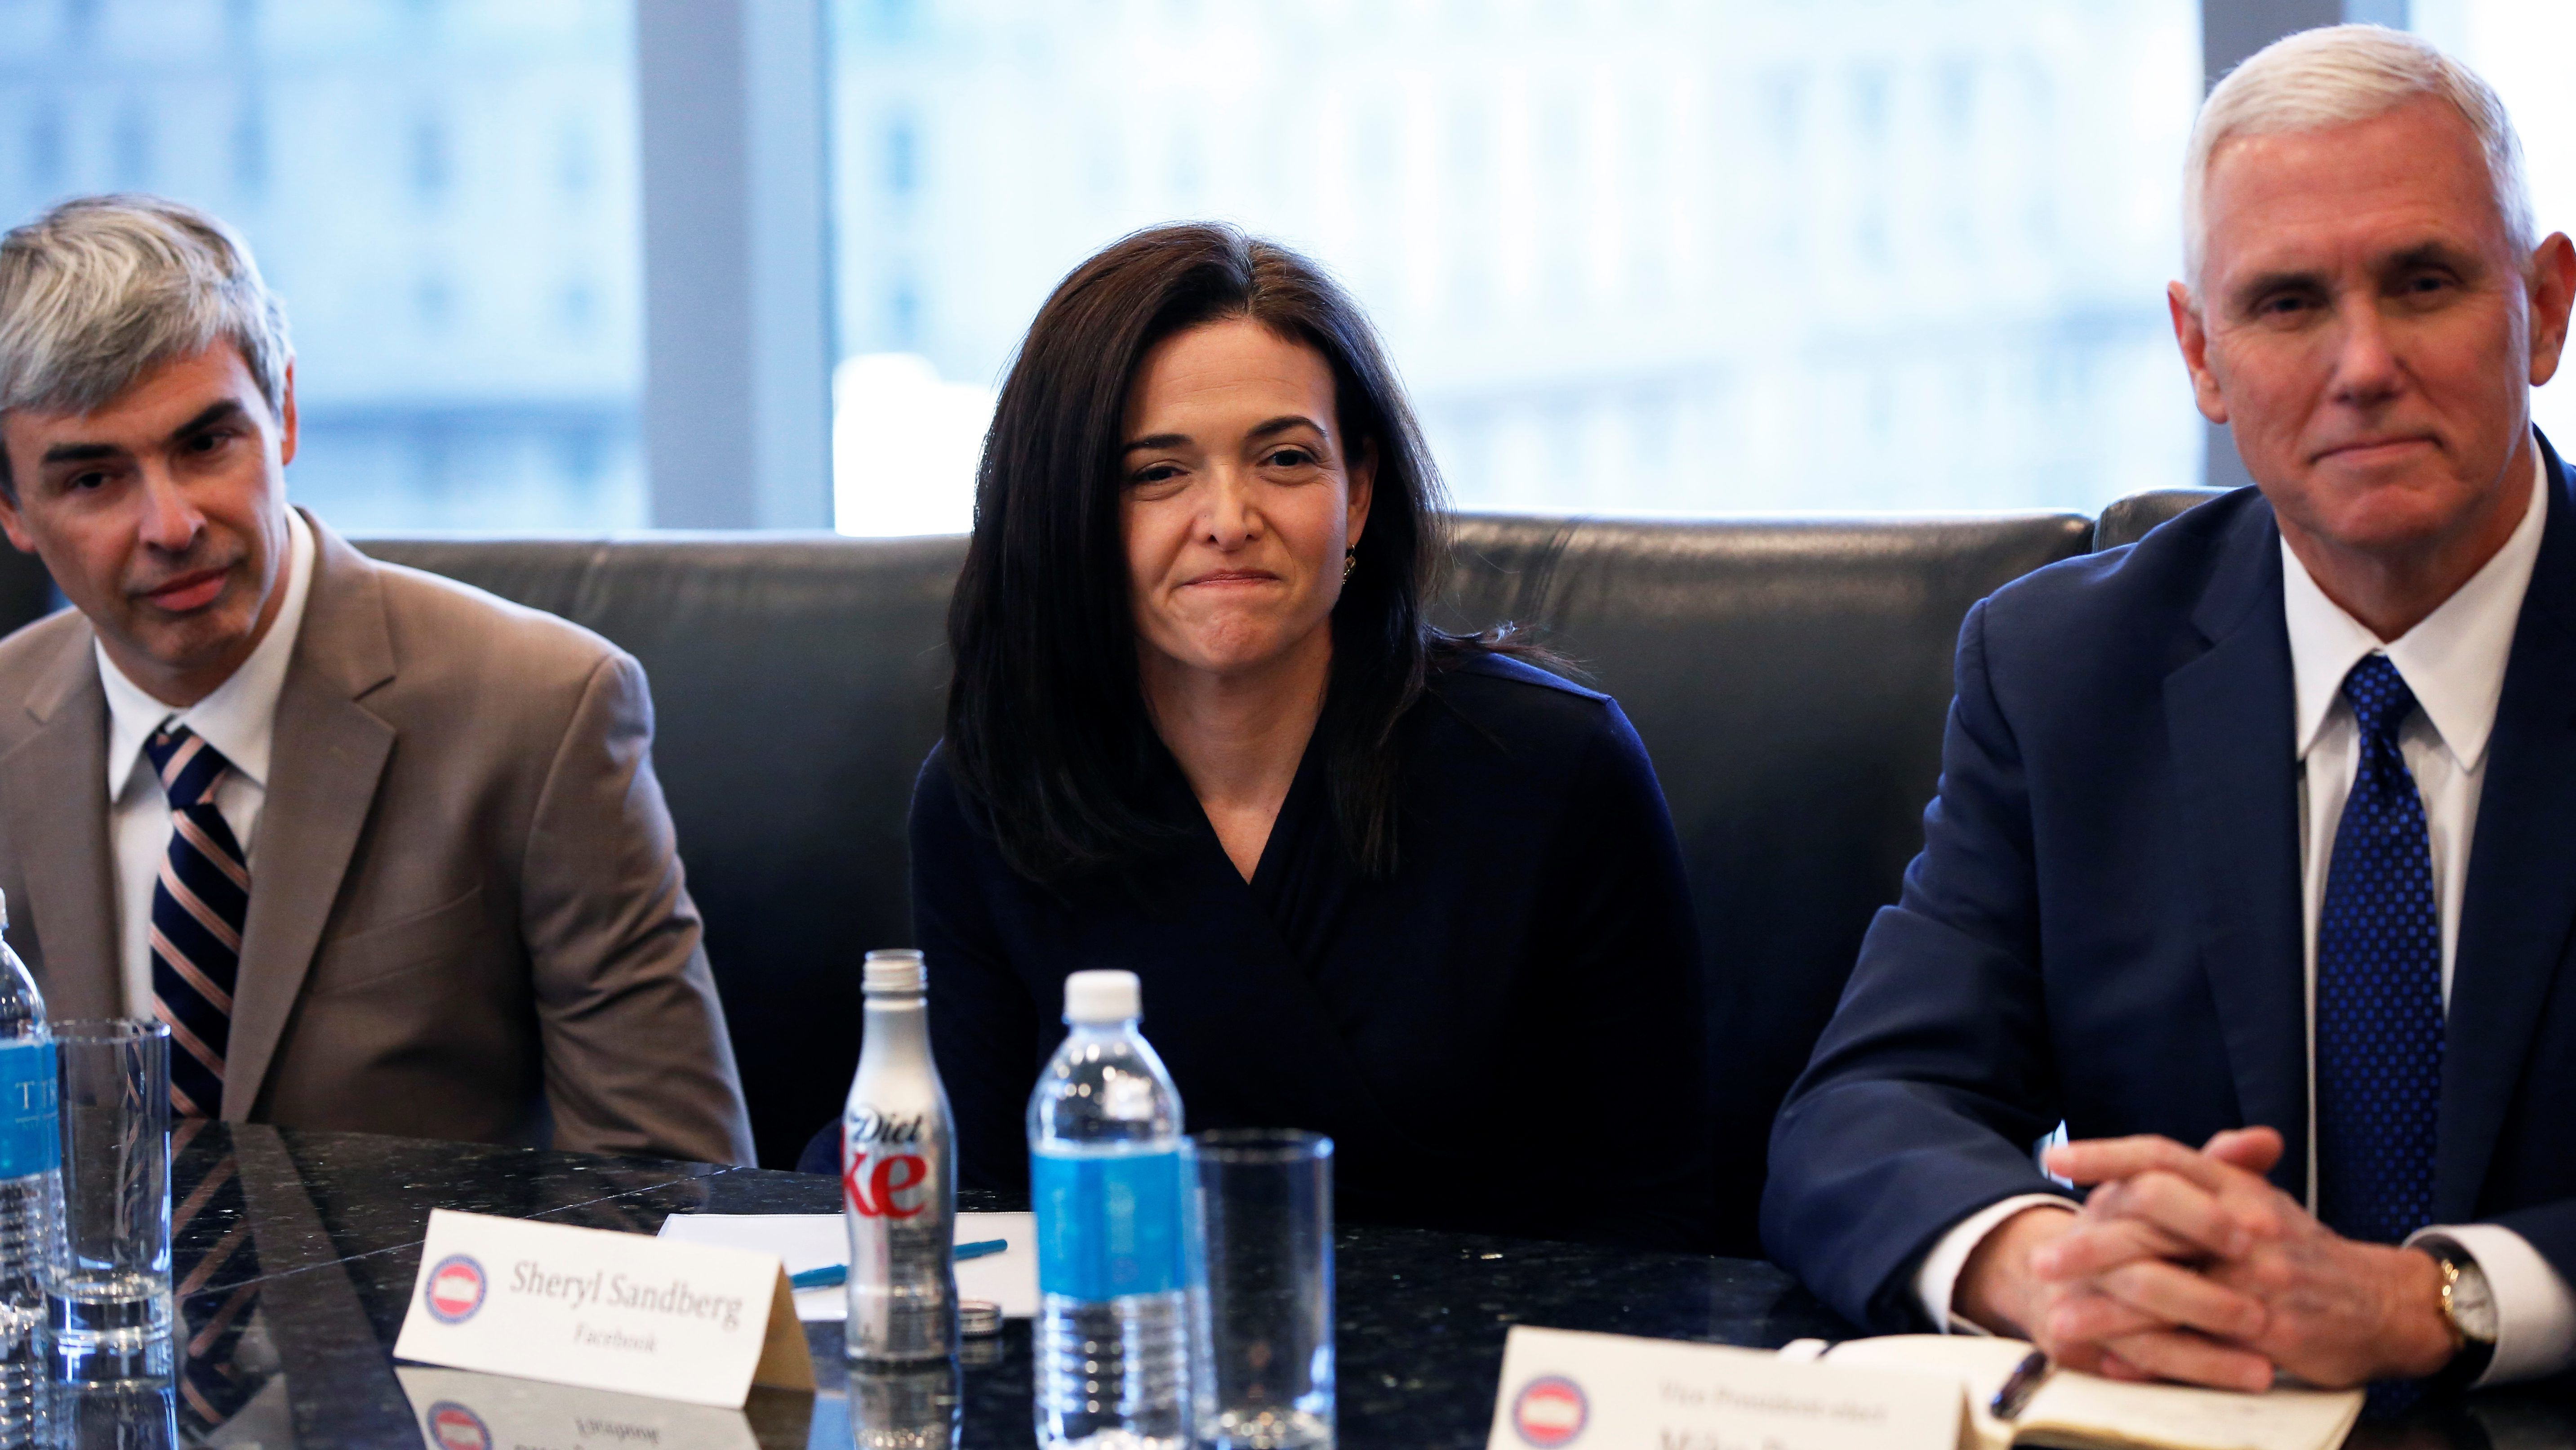 (L-R) Larry Page, CEO and Co-founder of Alphabet, Sheryl Sandberg, Chief Operating Officer of Facebook, and Vice President-elect Mike Pence sit during a meeting with U.S. President-elect Donald Trump and technology leaders at Trump Tower in New York U.S., December 14, 2016. REUTERS/Shannon Stapleton - RC110E33BD00